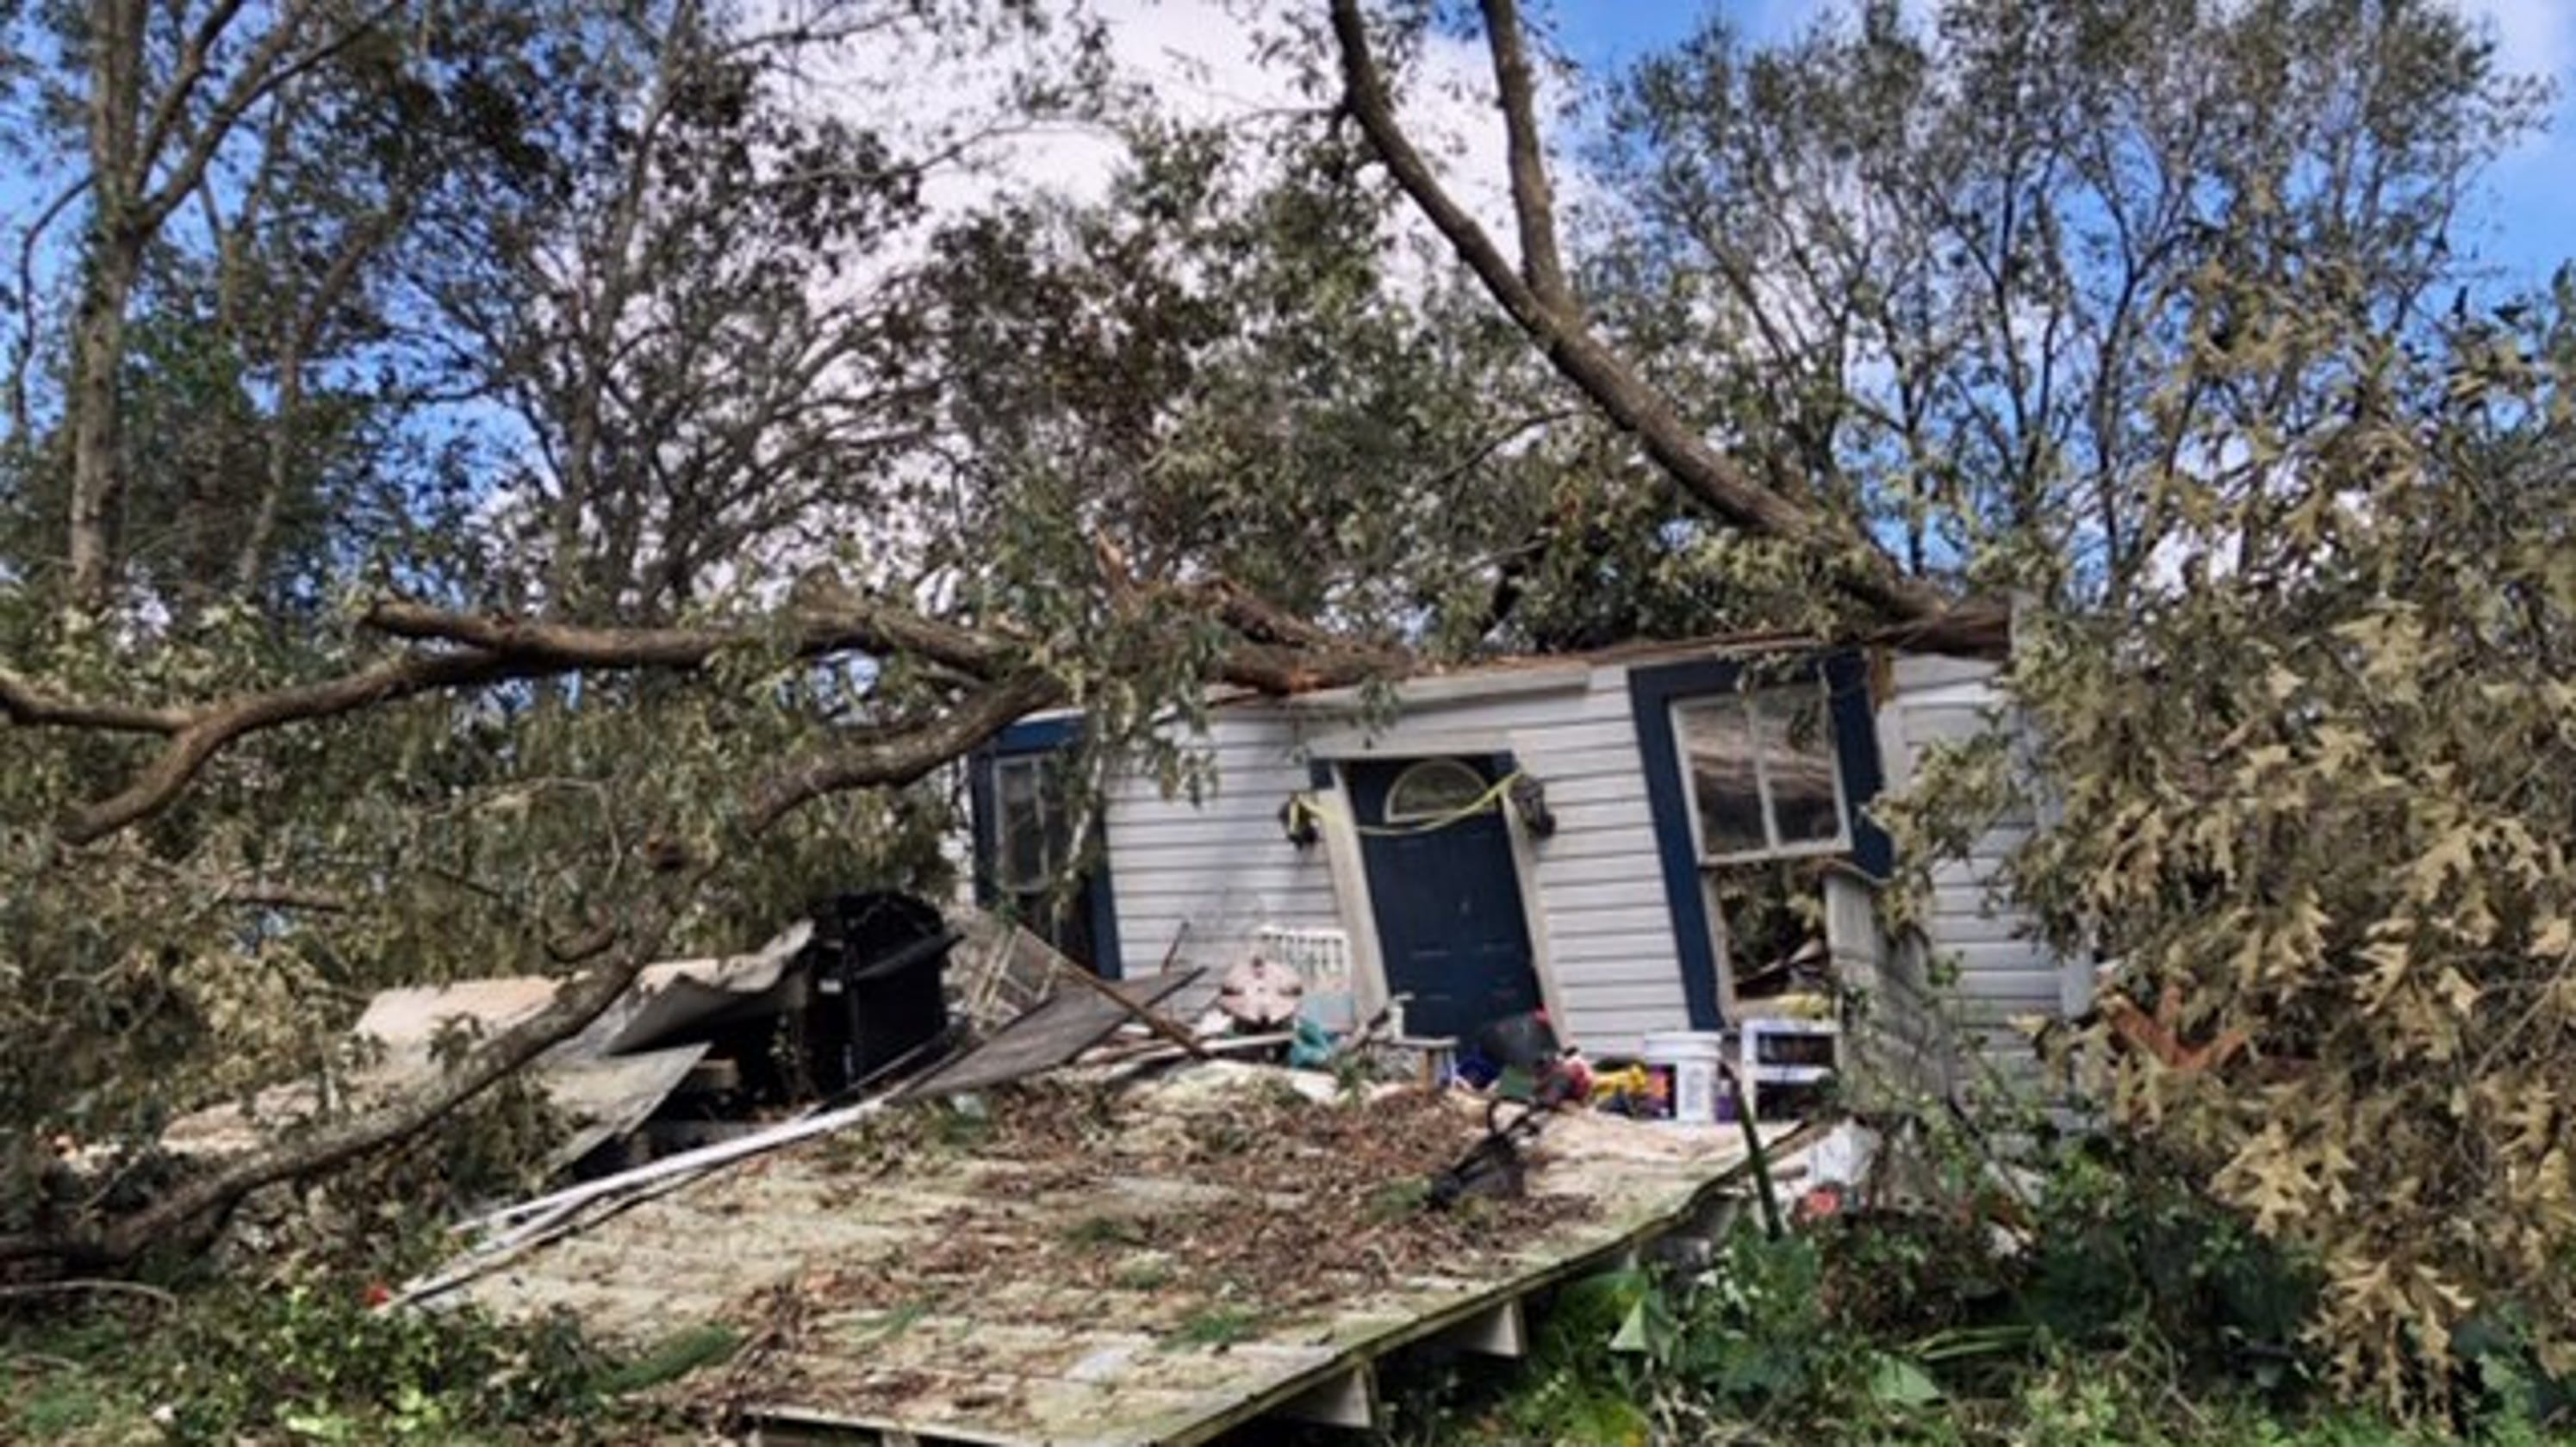 It's a nightmare' says wife of man killed during Hurricane